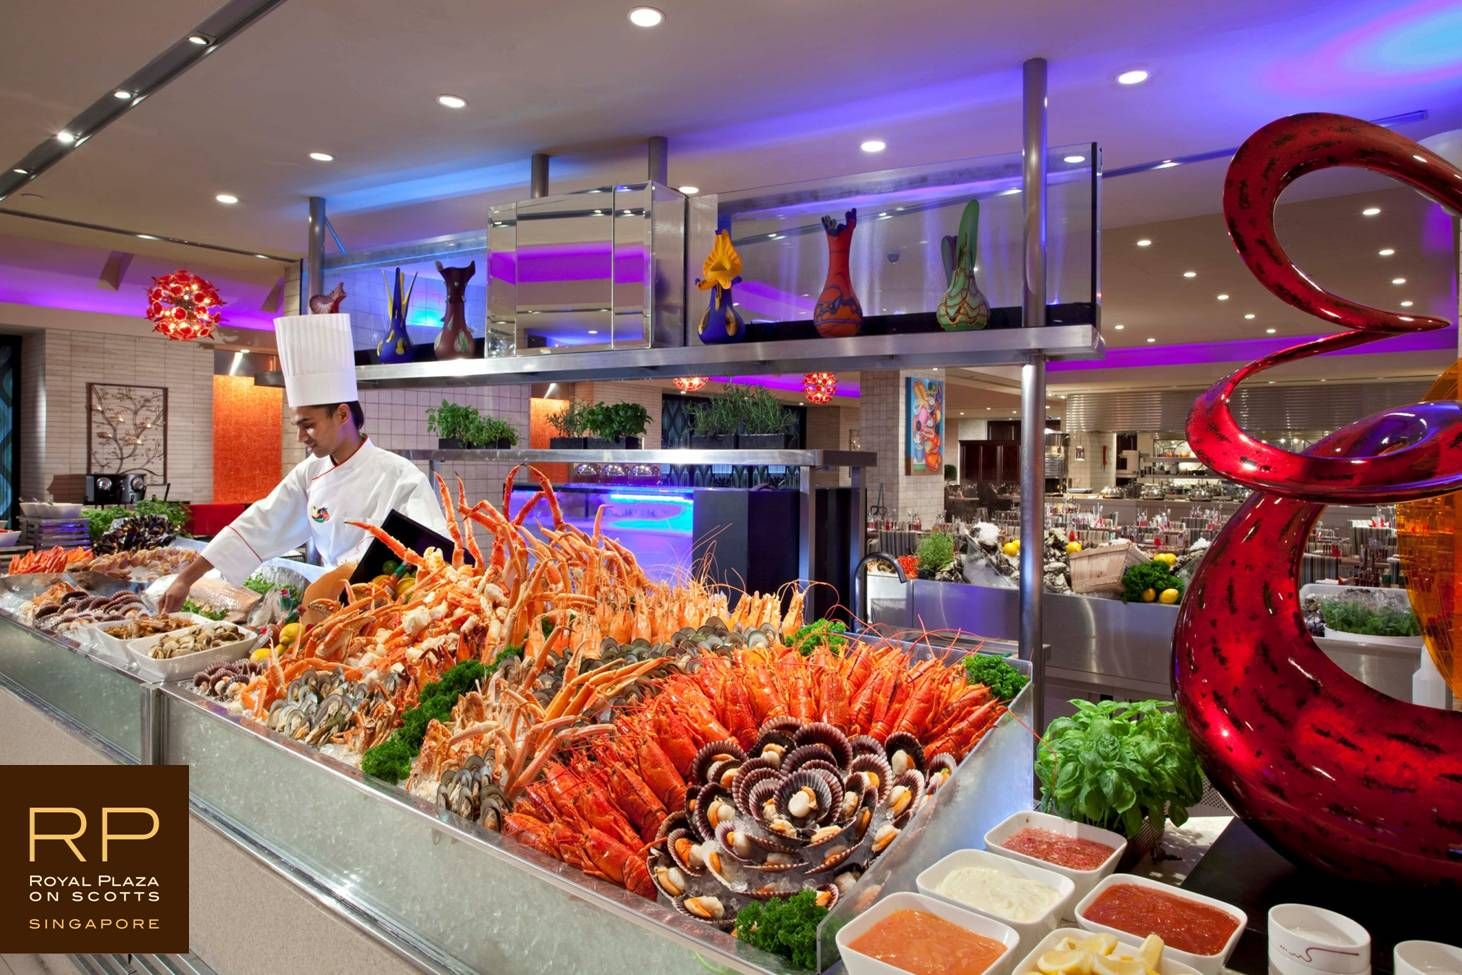 Seafood Selection At Carousel Buffet Restaurant Level 1 Hotel Buffet Buffet Restaurant Best Buffet